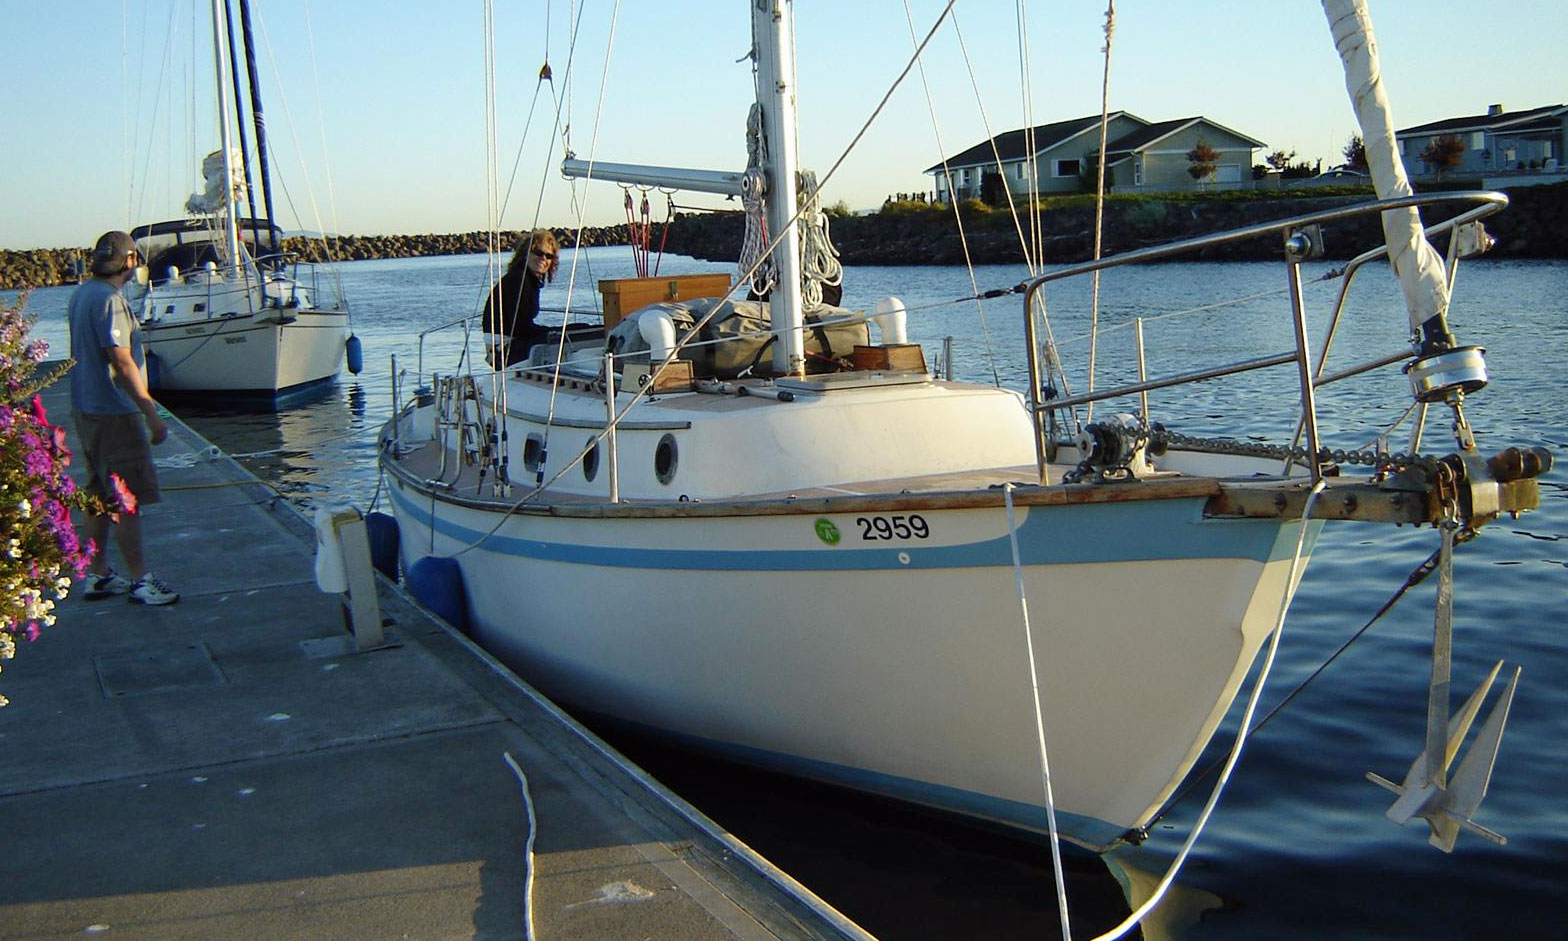 A Southern Cross 31 cutter